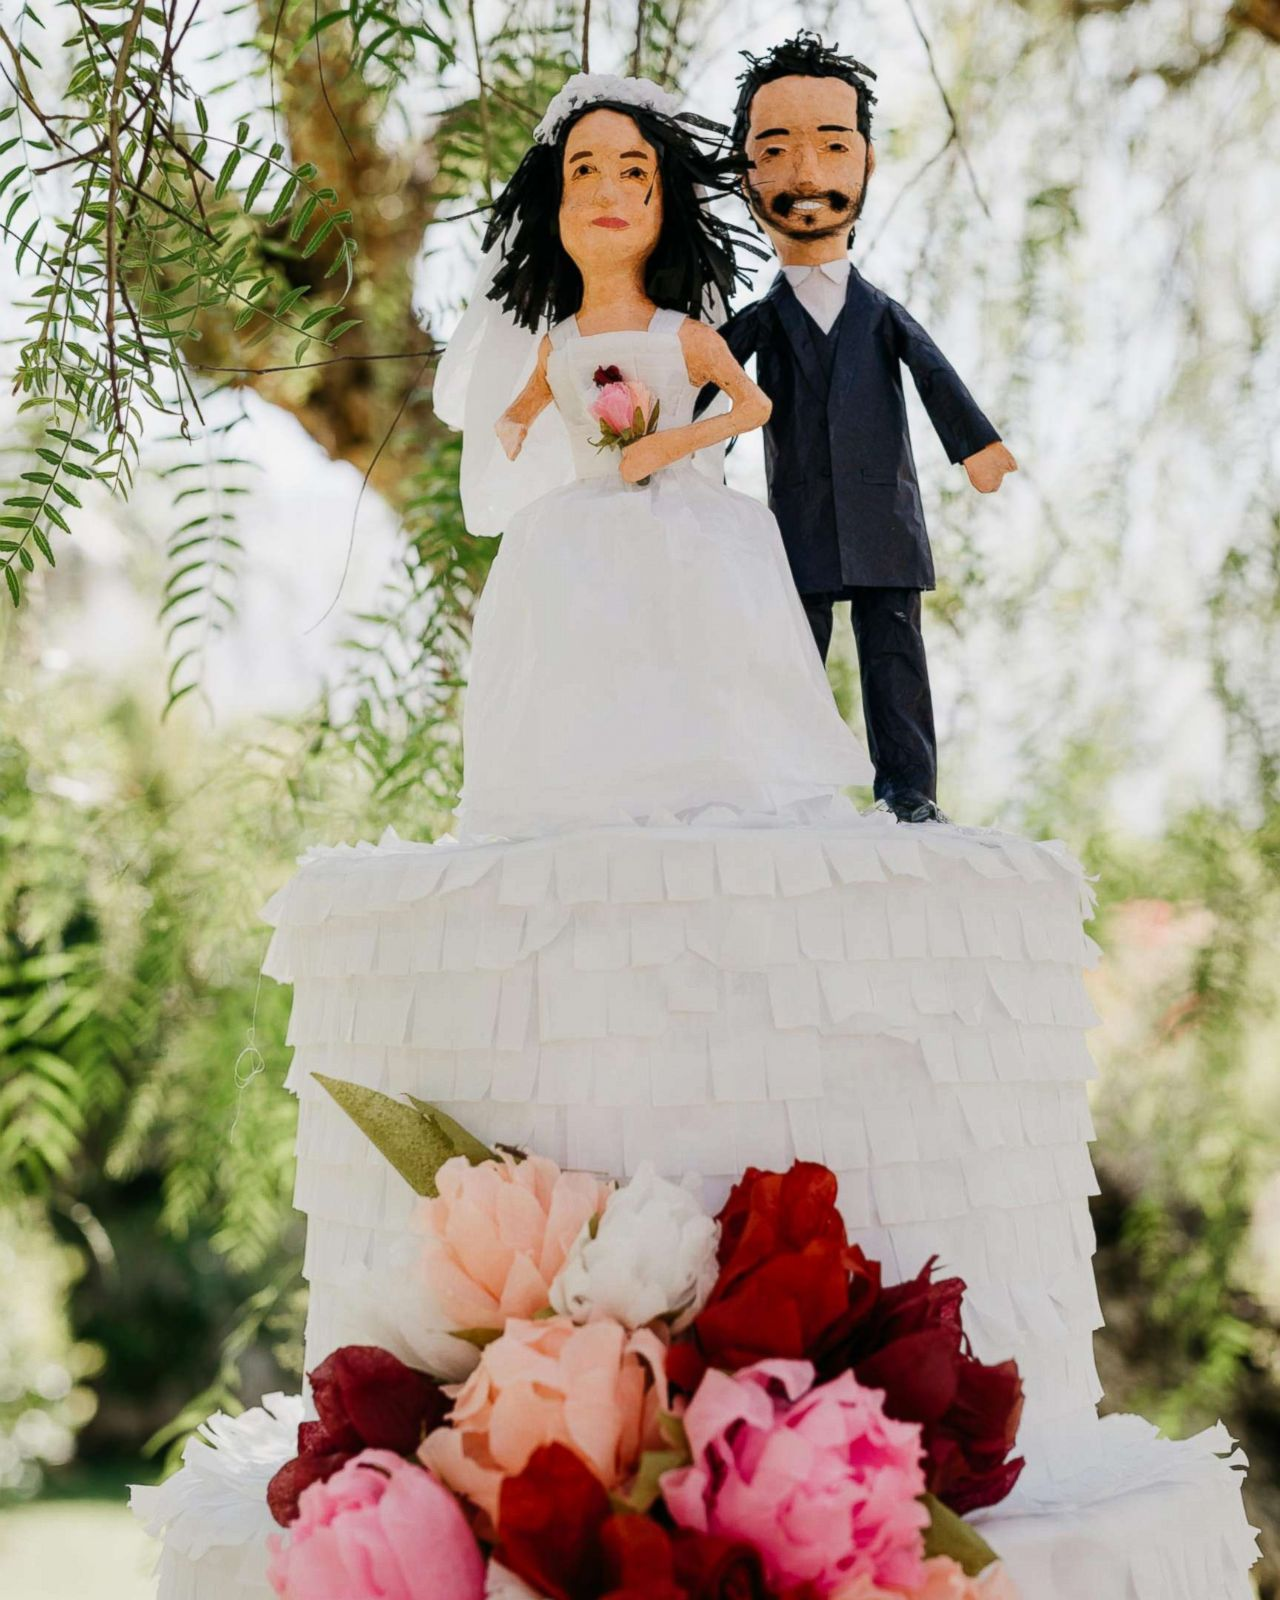 Los Angeles couple ditches wedding cake for awesome cake piñata